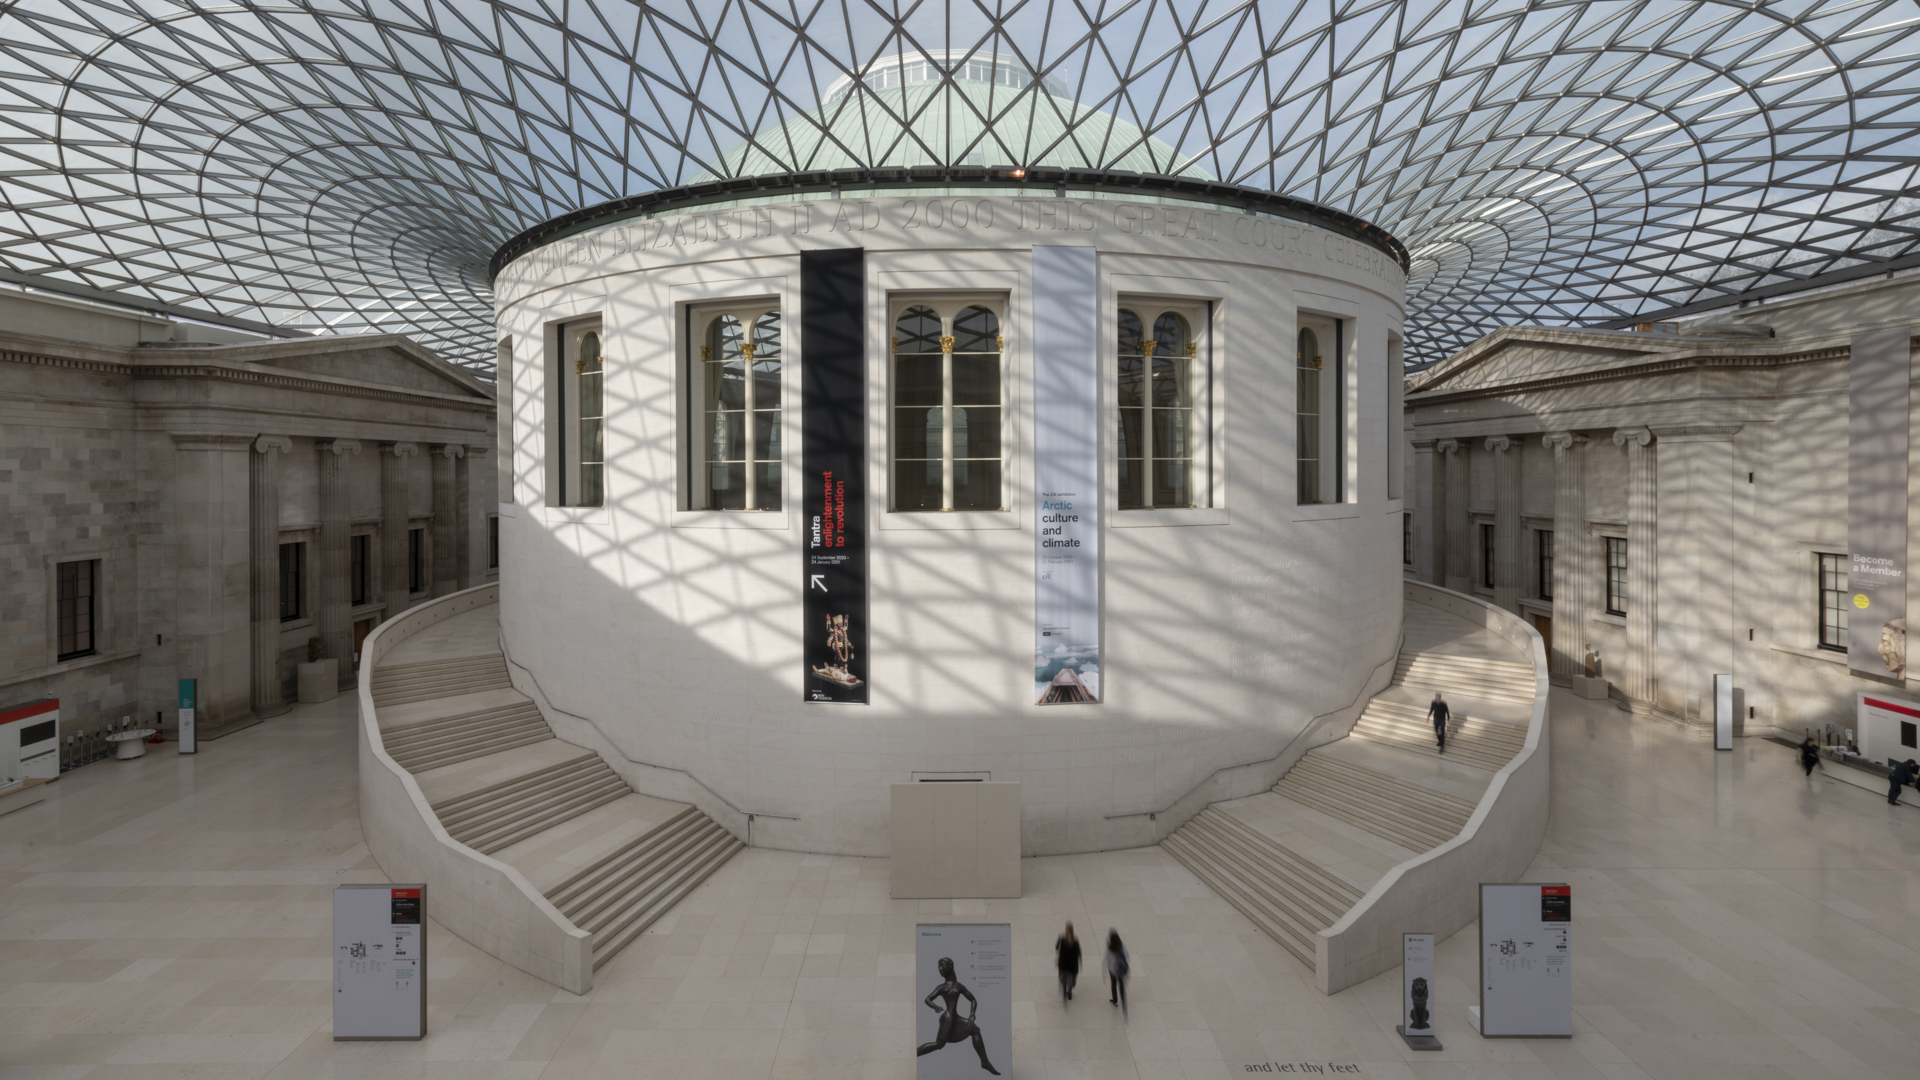 A photo of the Great Court, showing the glass and steel roof, with the round reading room in the centre.